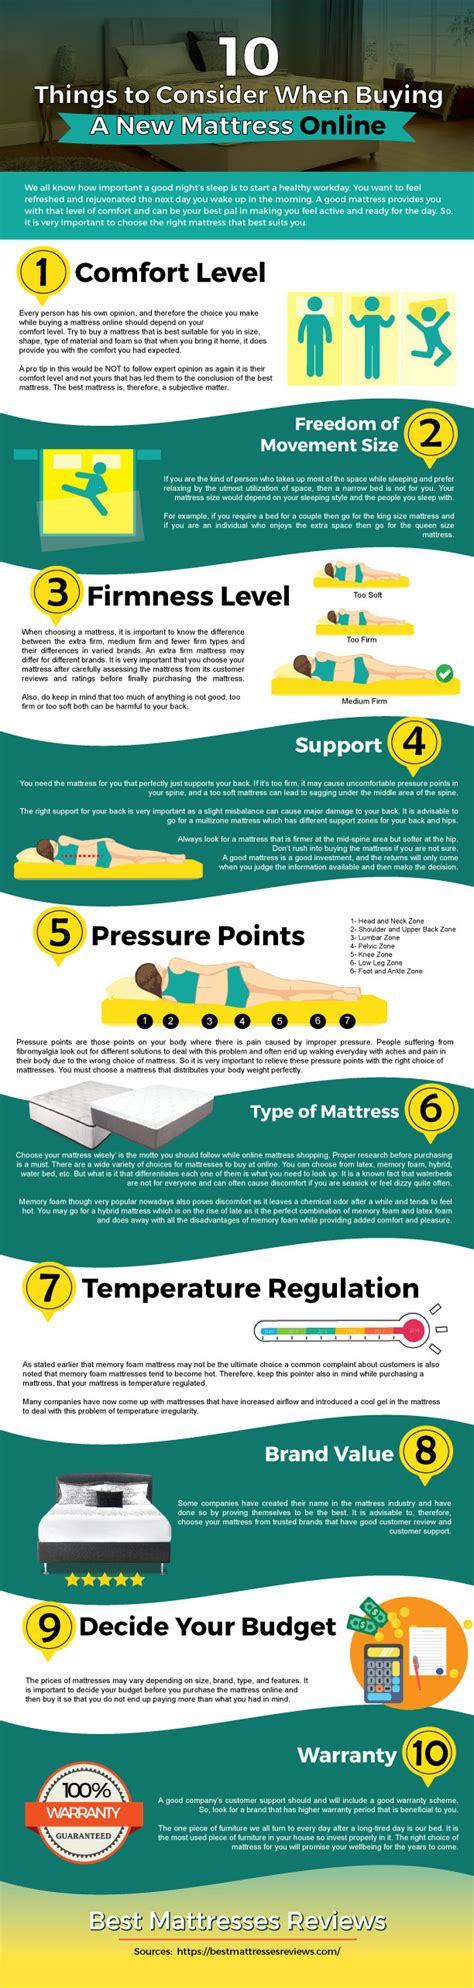 10 things to consider when buying a new mattress online